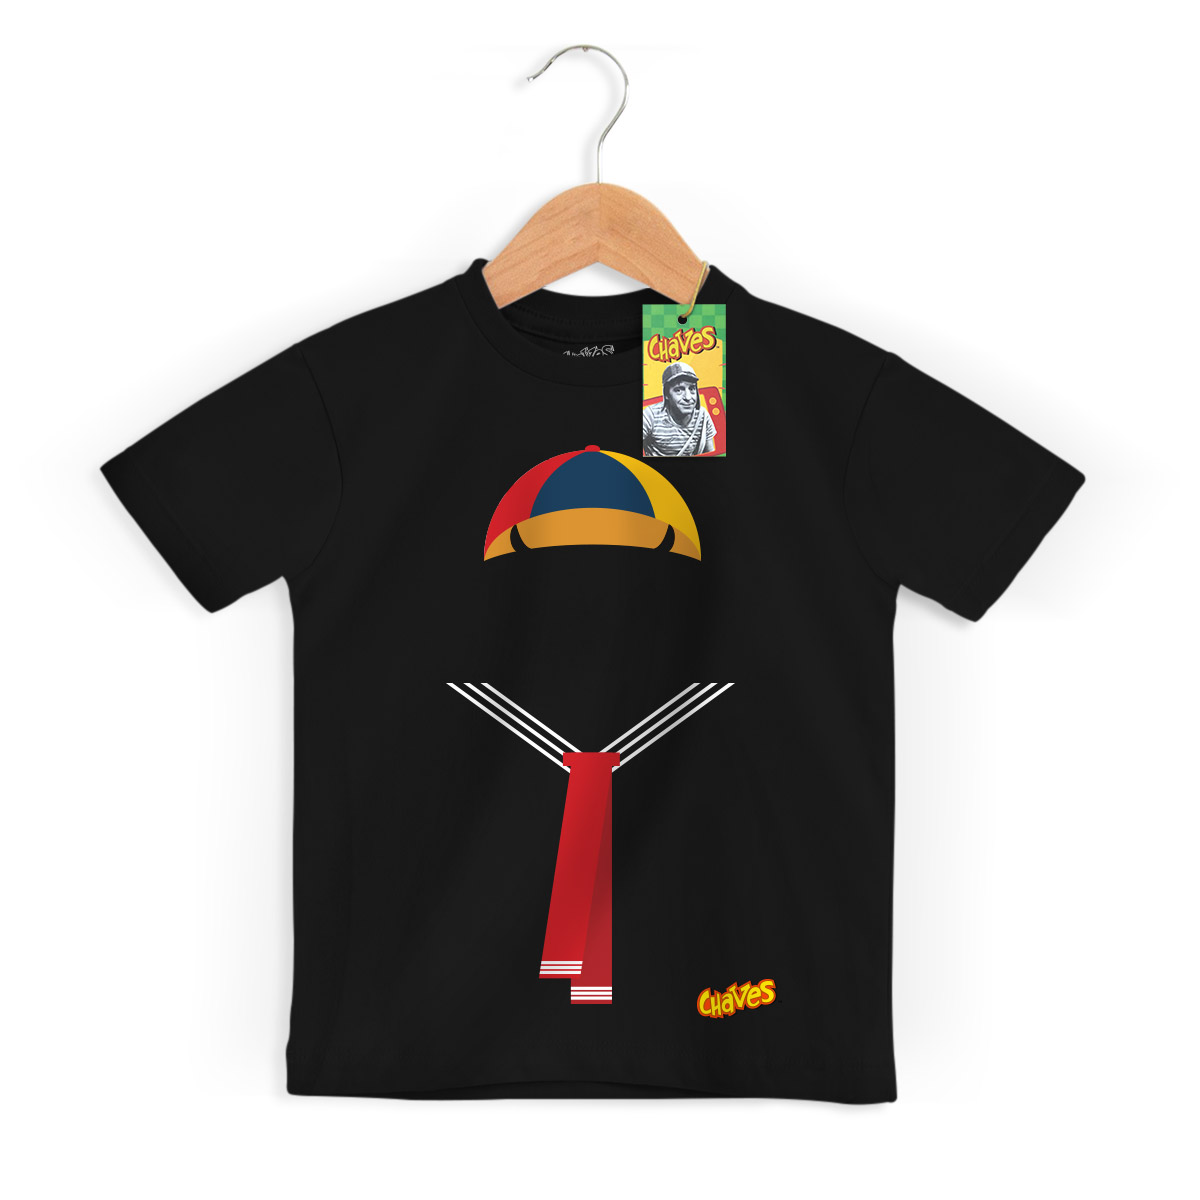 Camiseta Infantil Roupa do Quico